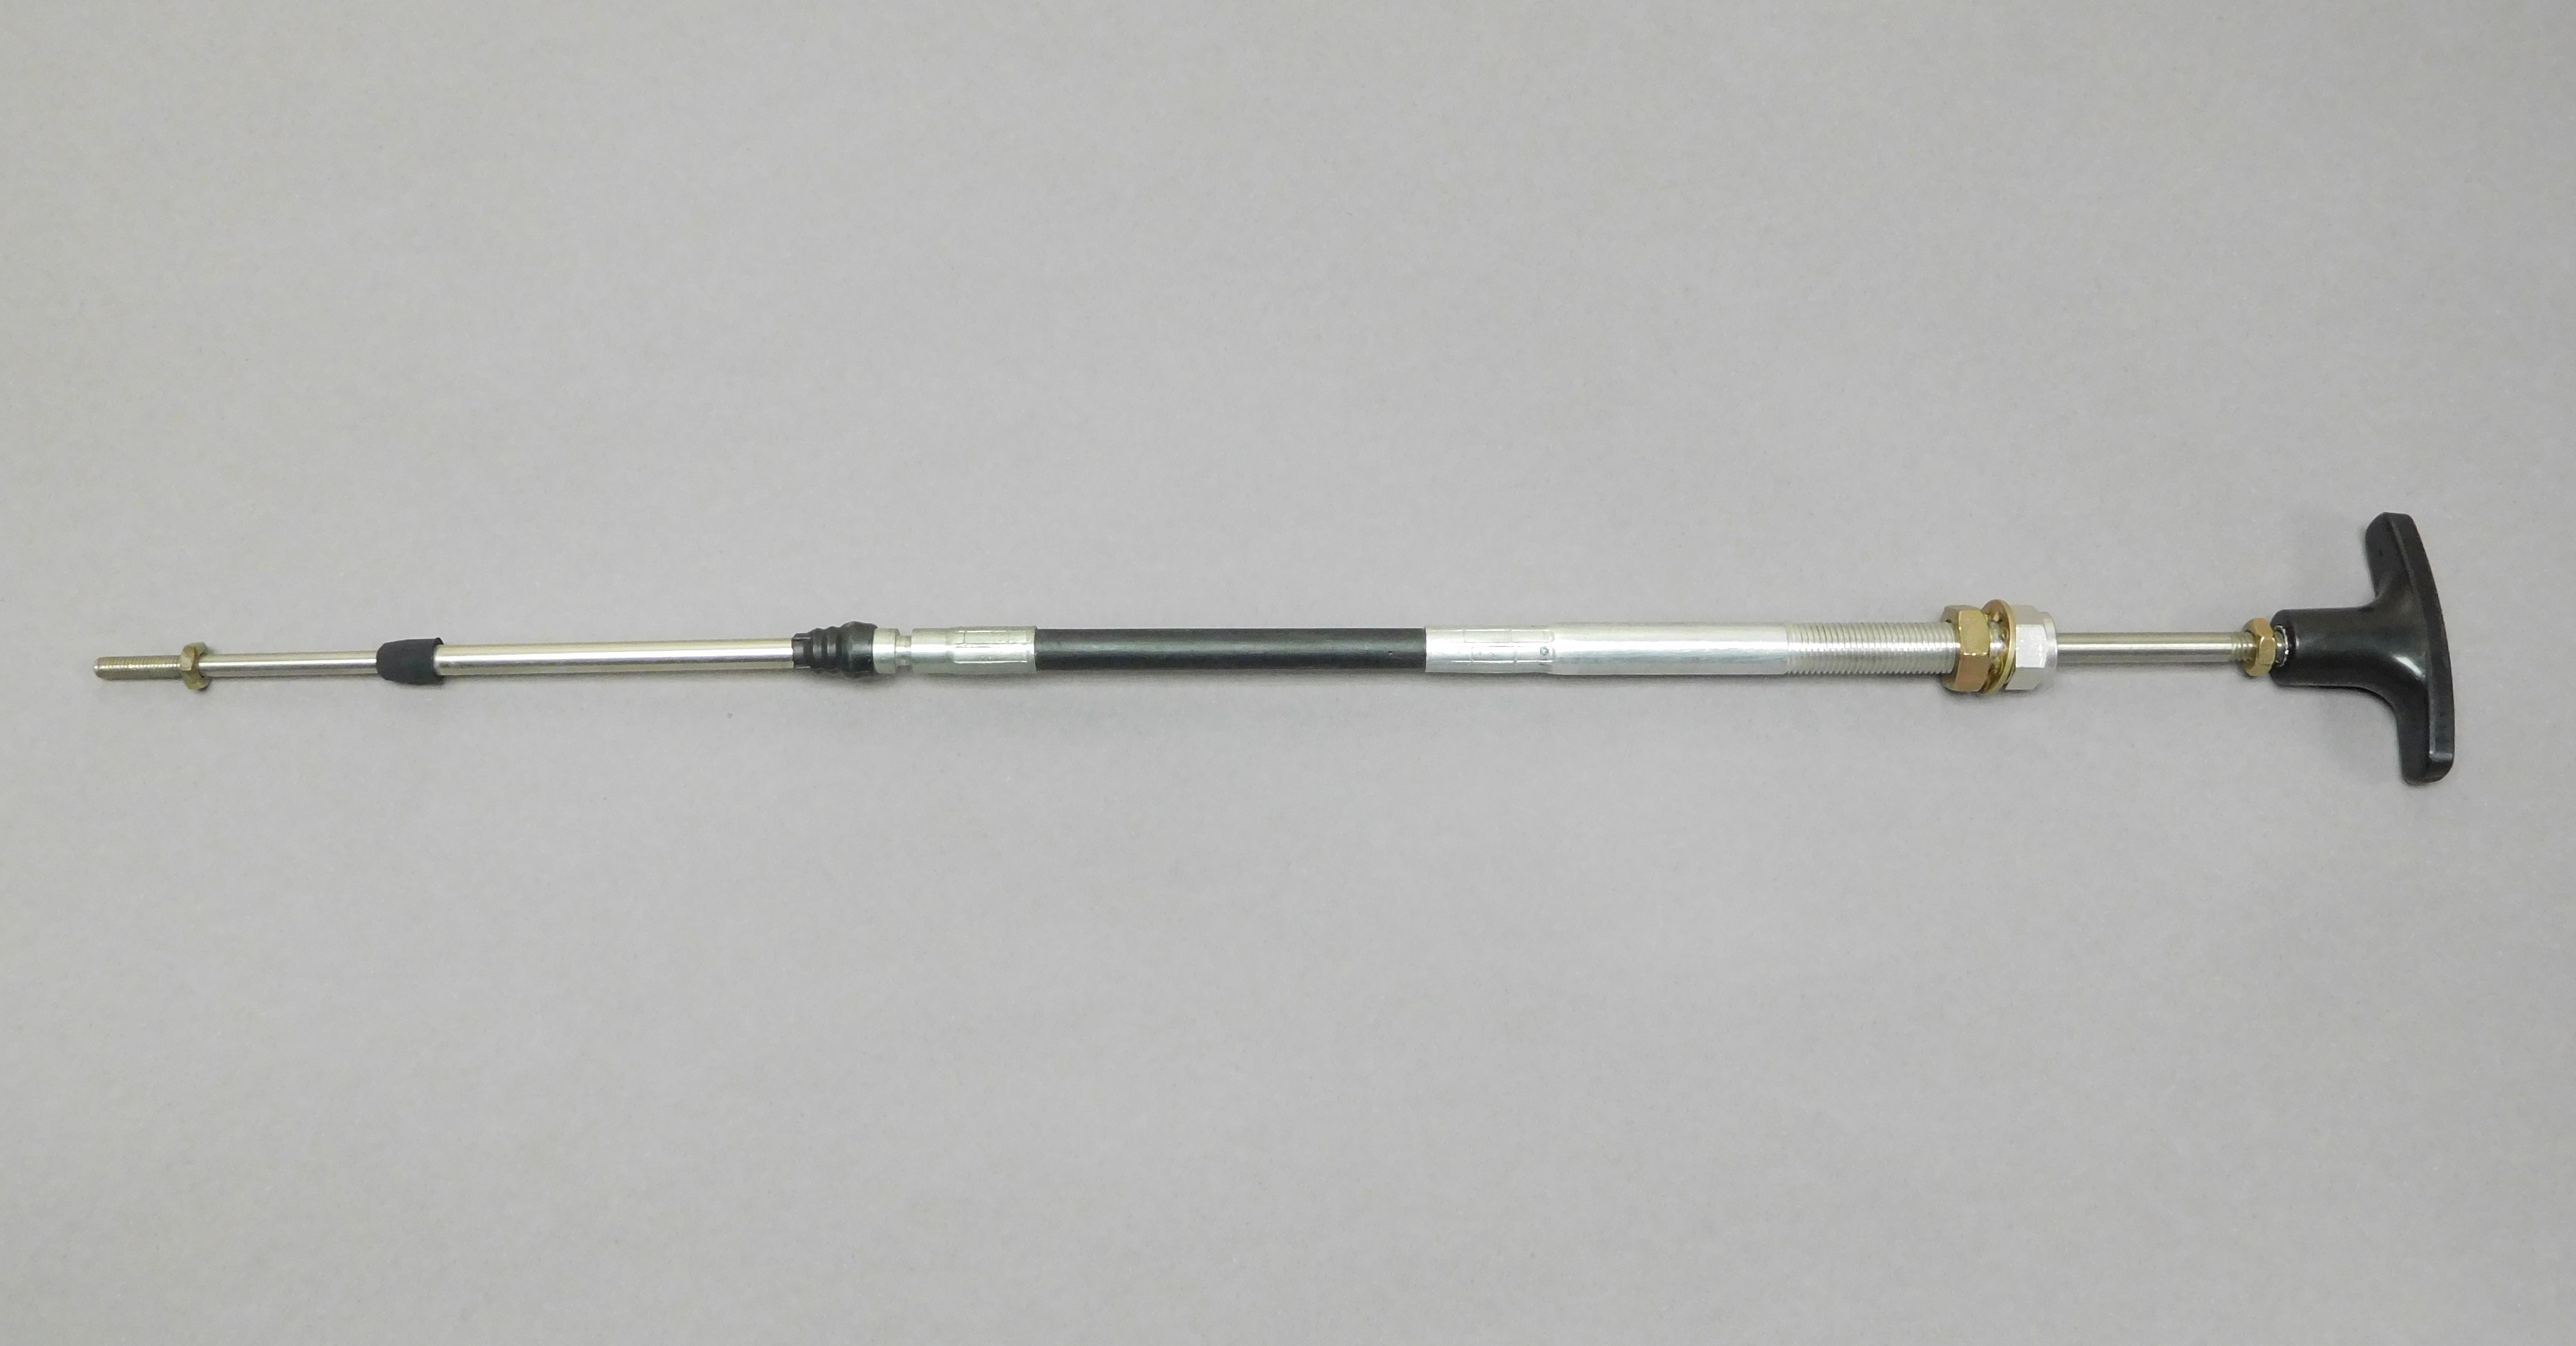 Push Pull Cables >> Shut-off Cable, heavy duty, push-pull, T-handle included – Kinsler Fuel Injection